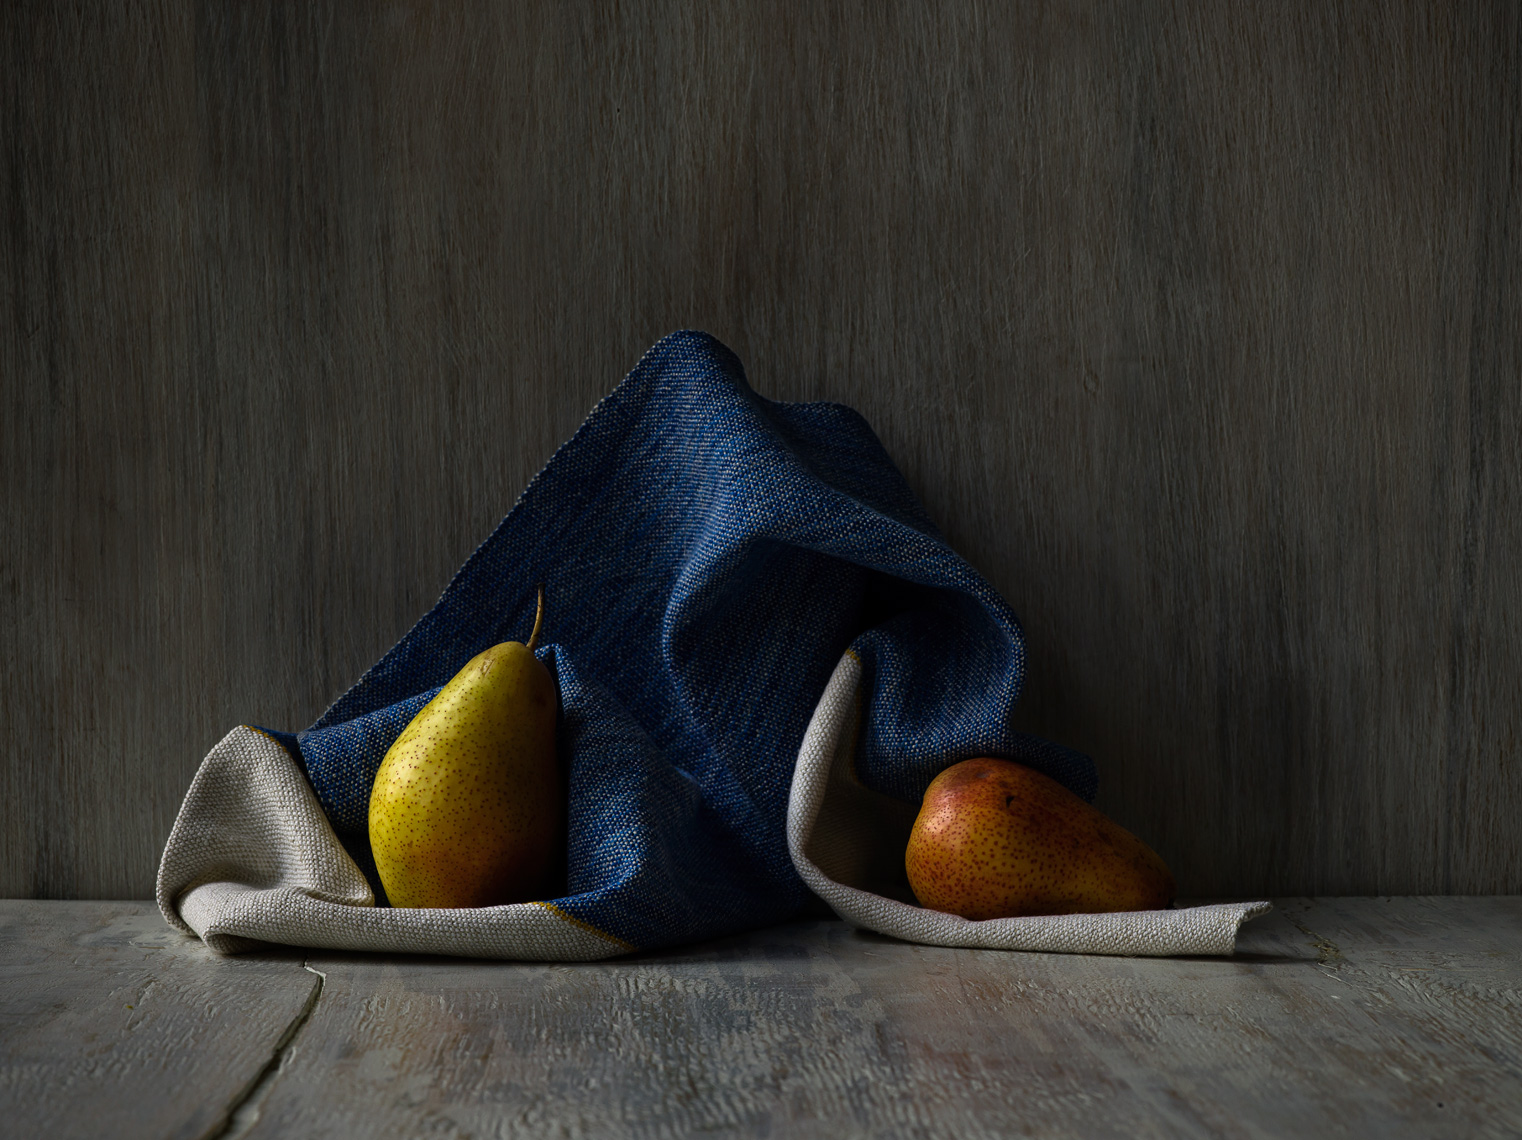 towelsandpears